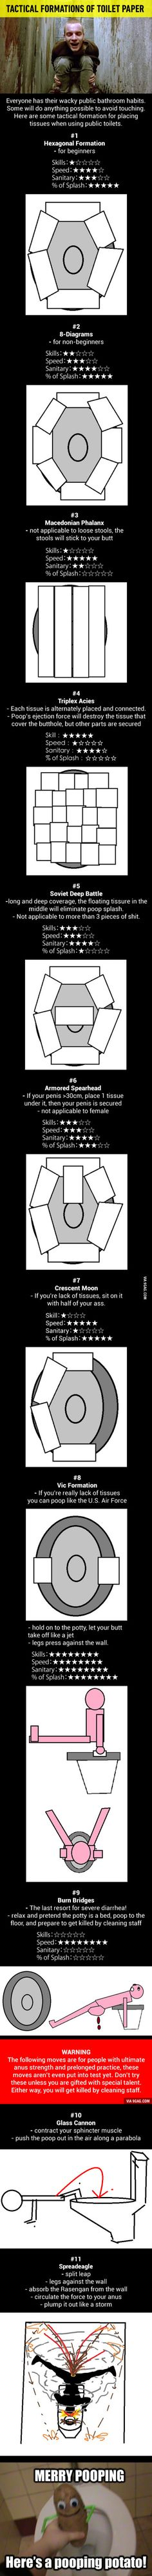 The Ultimate Guide Of Placing Tissues When Pooping In Public Toilet